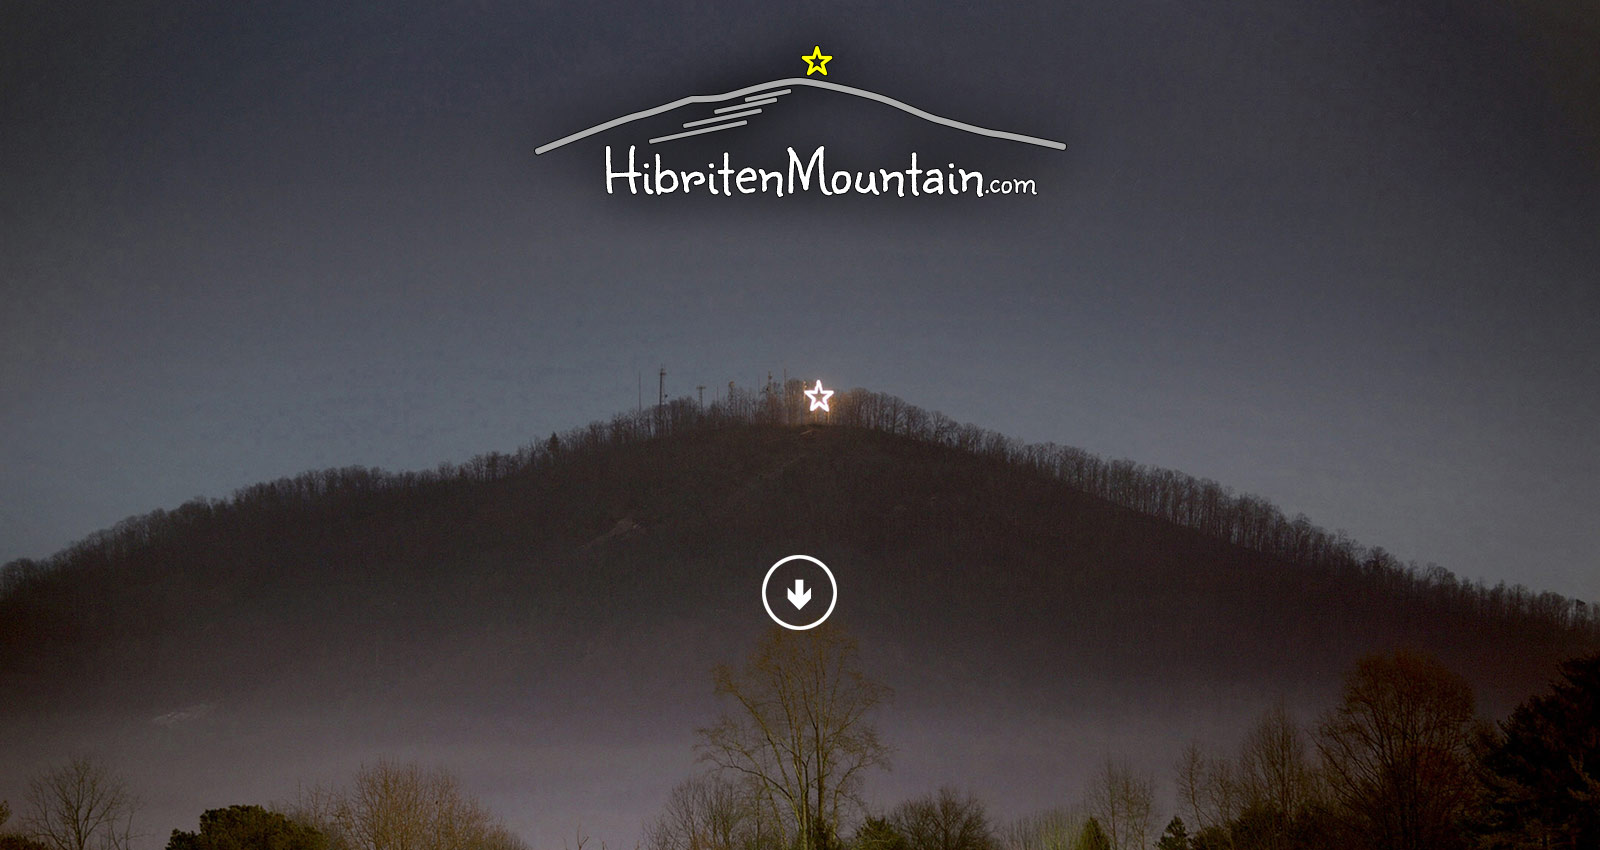 hibriten-mountain-home-page-001